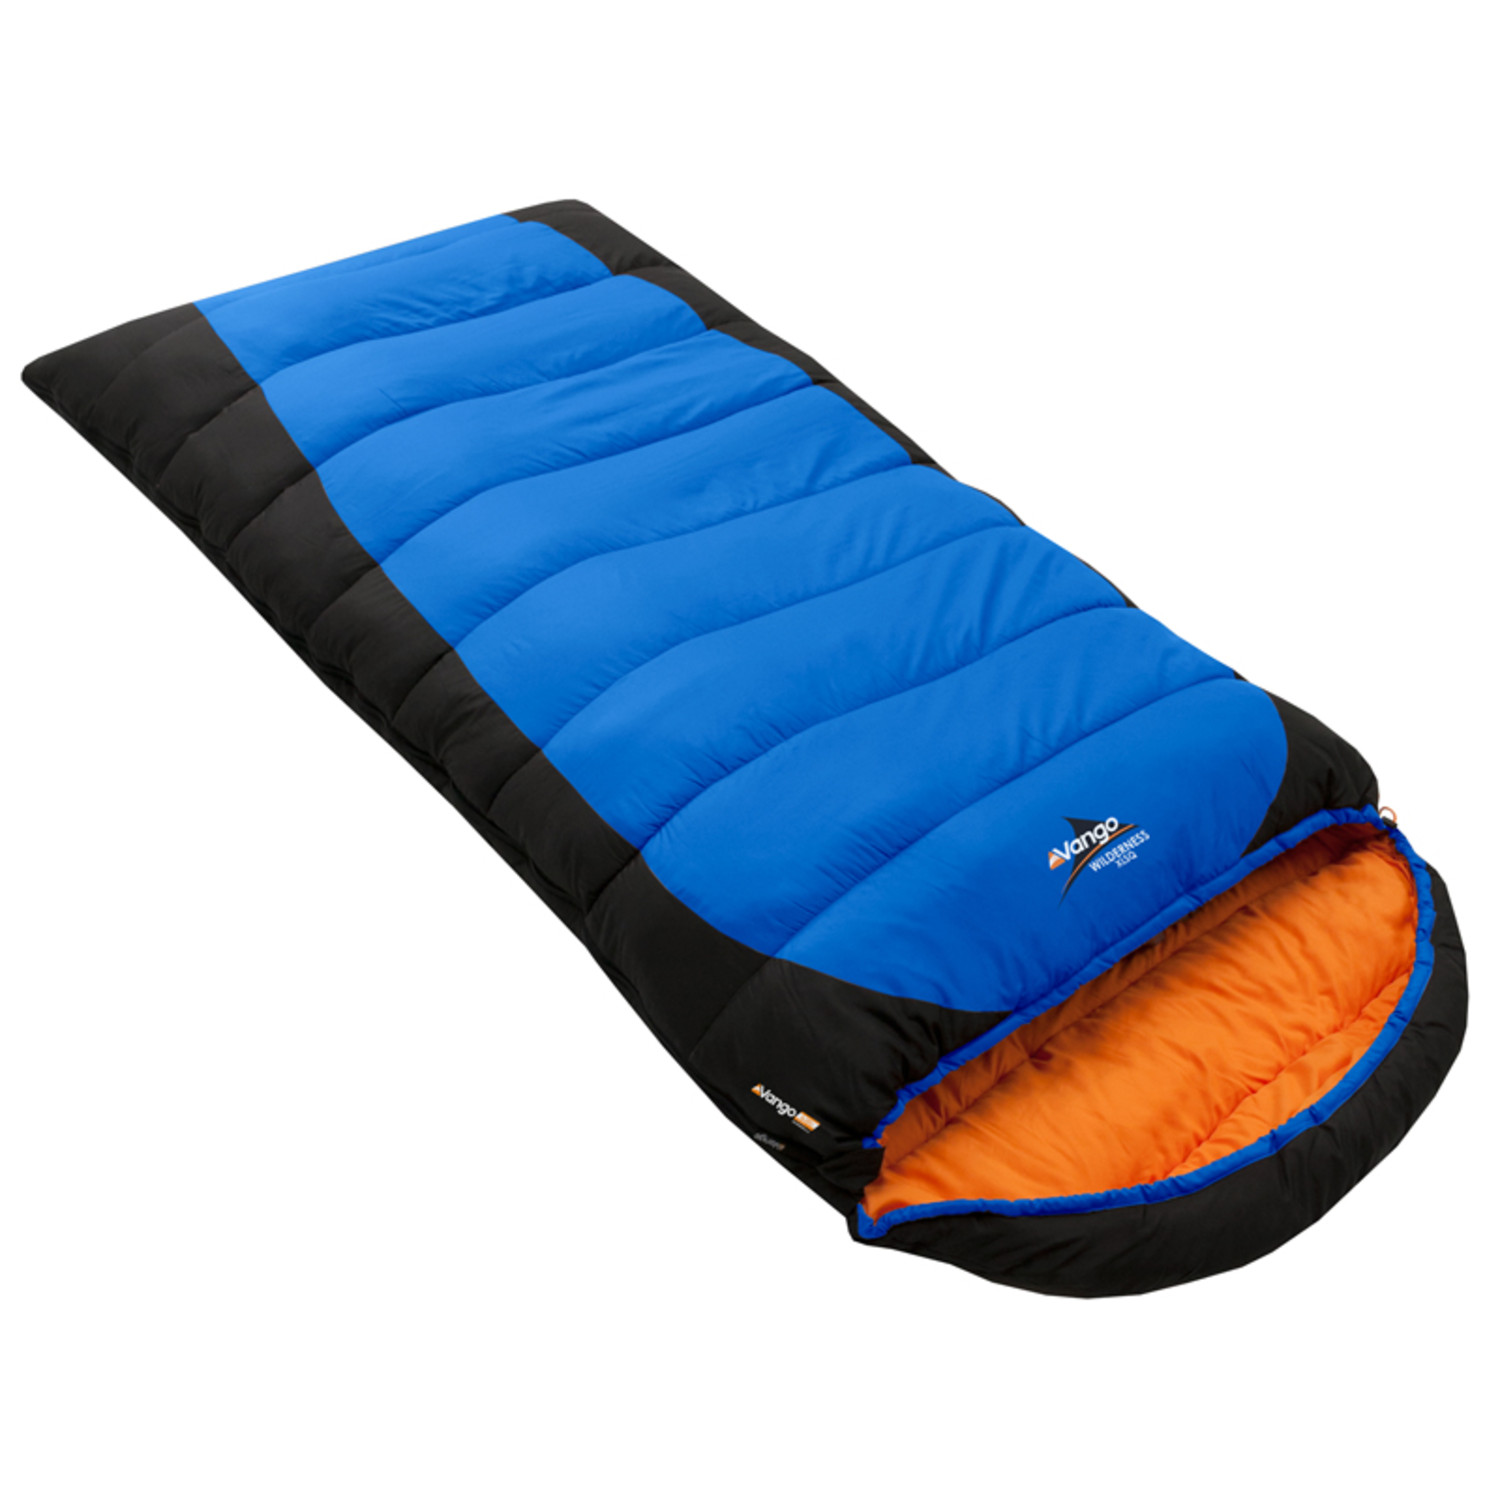 1500x1500 Camping Sleeping Bag Clipart